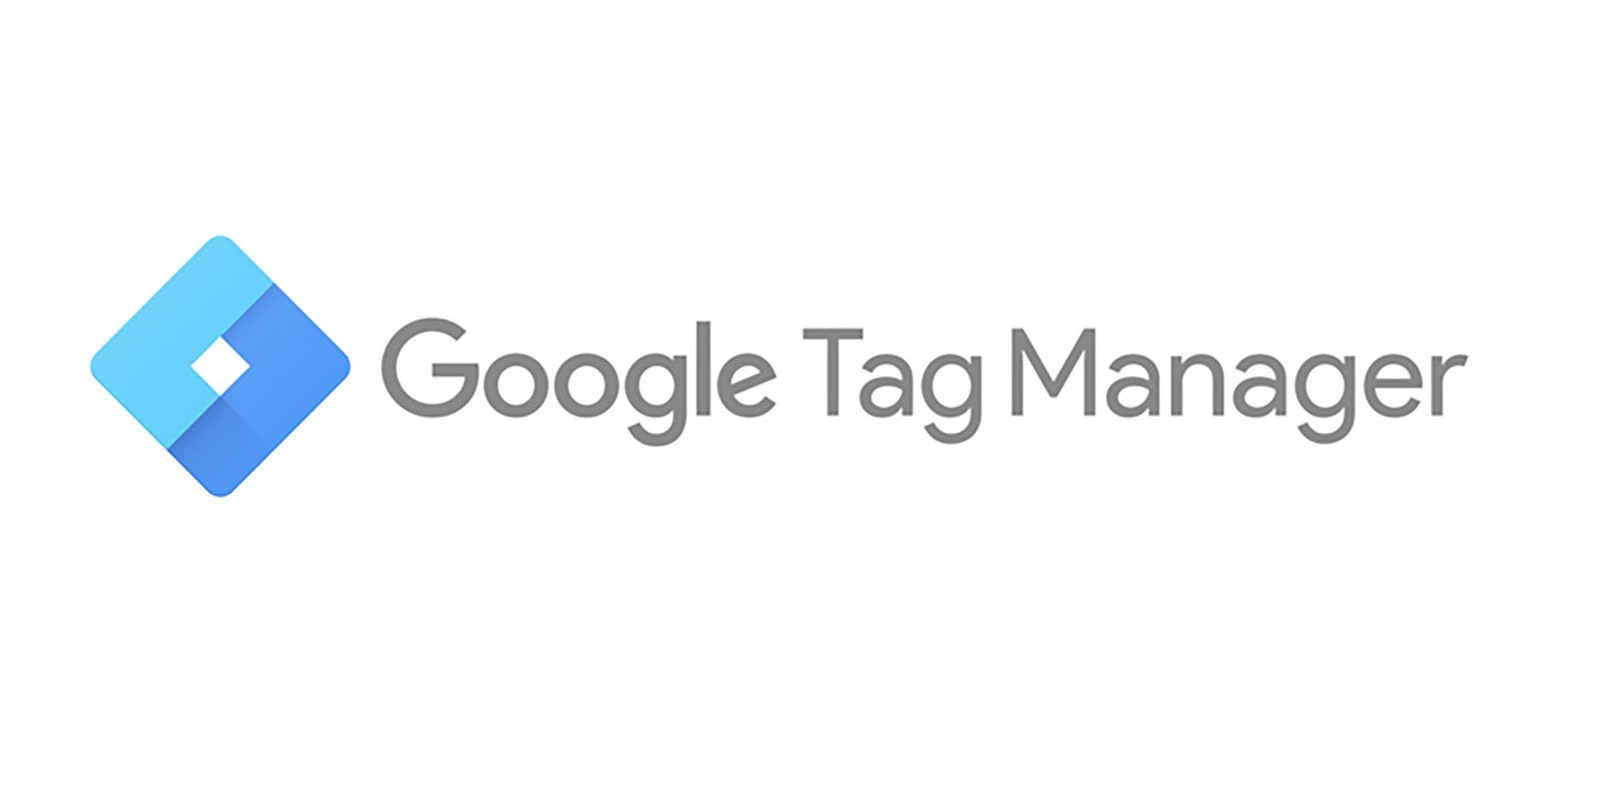 Afbeelding Google Tag Manager